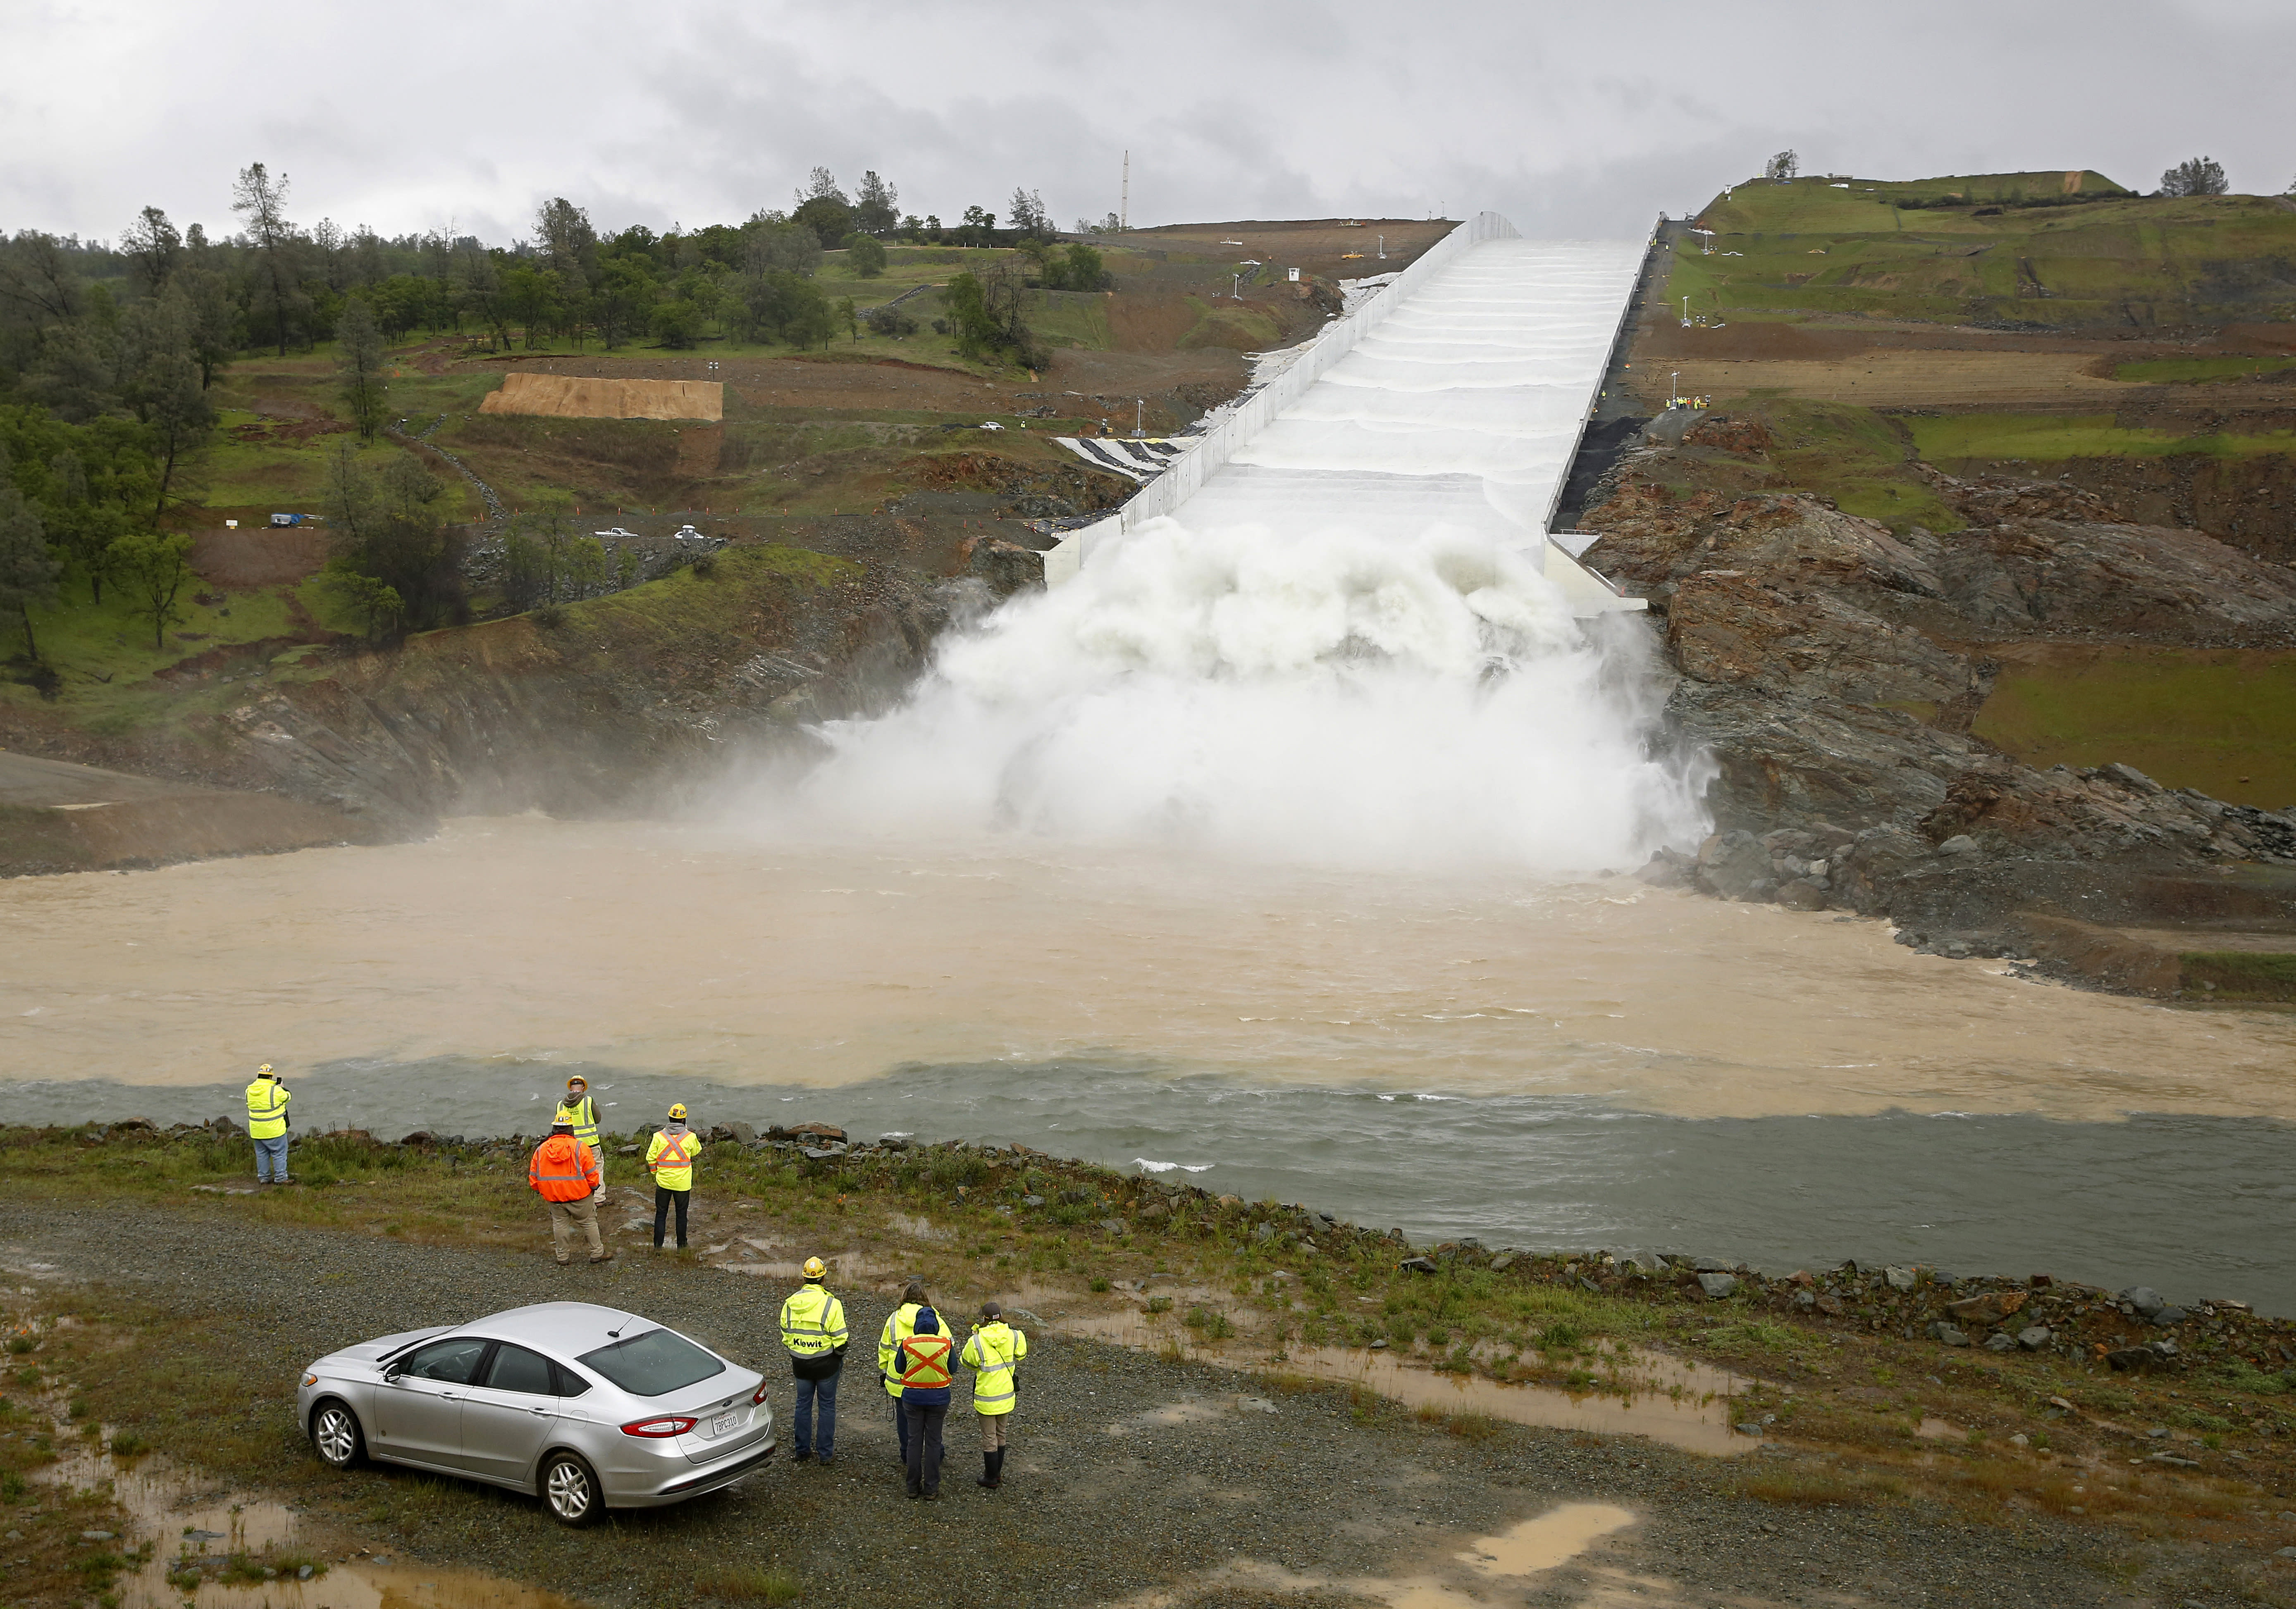 California turns to dam's spillway for 1st time since crisis